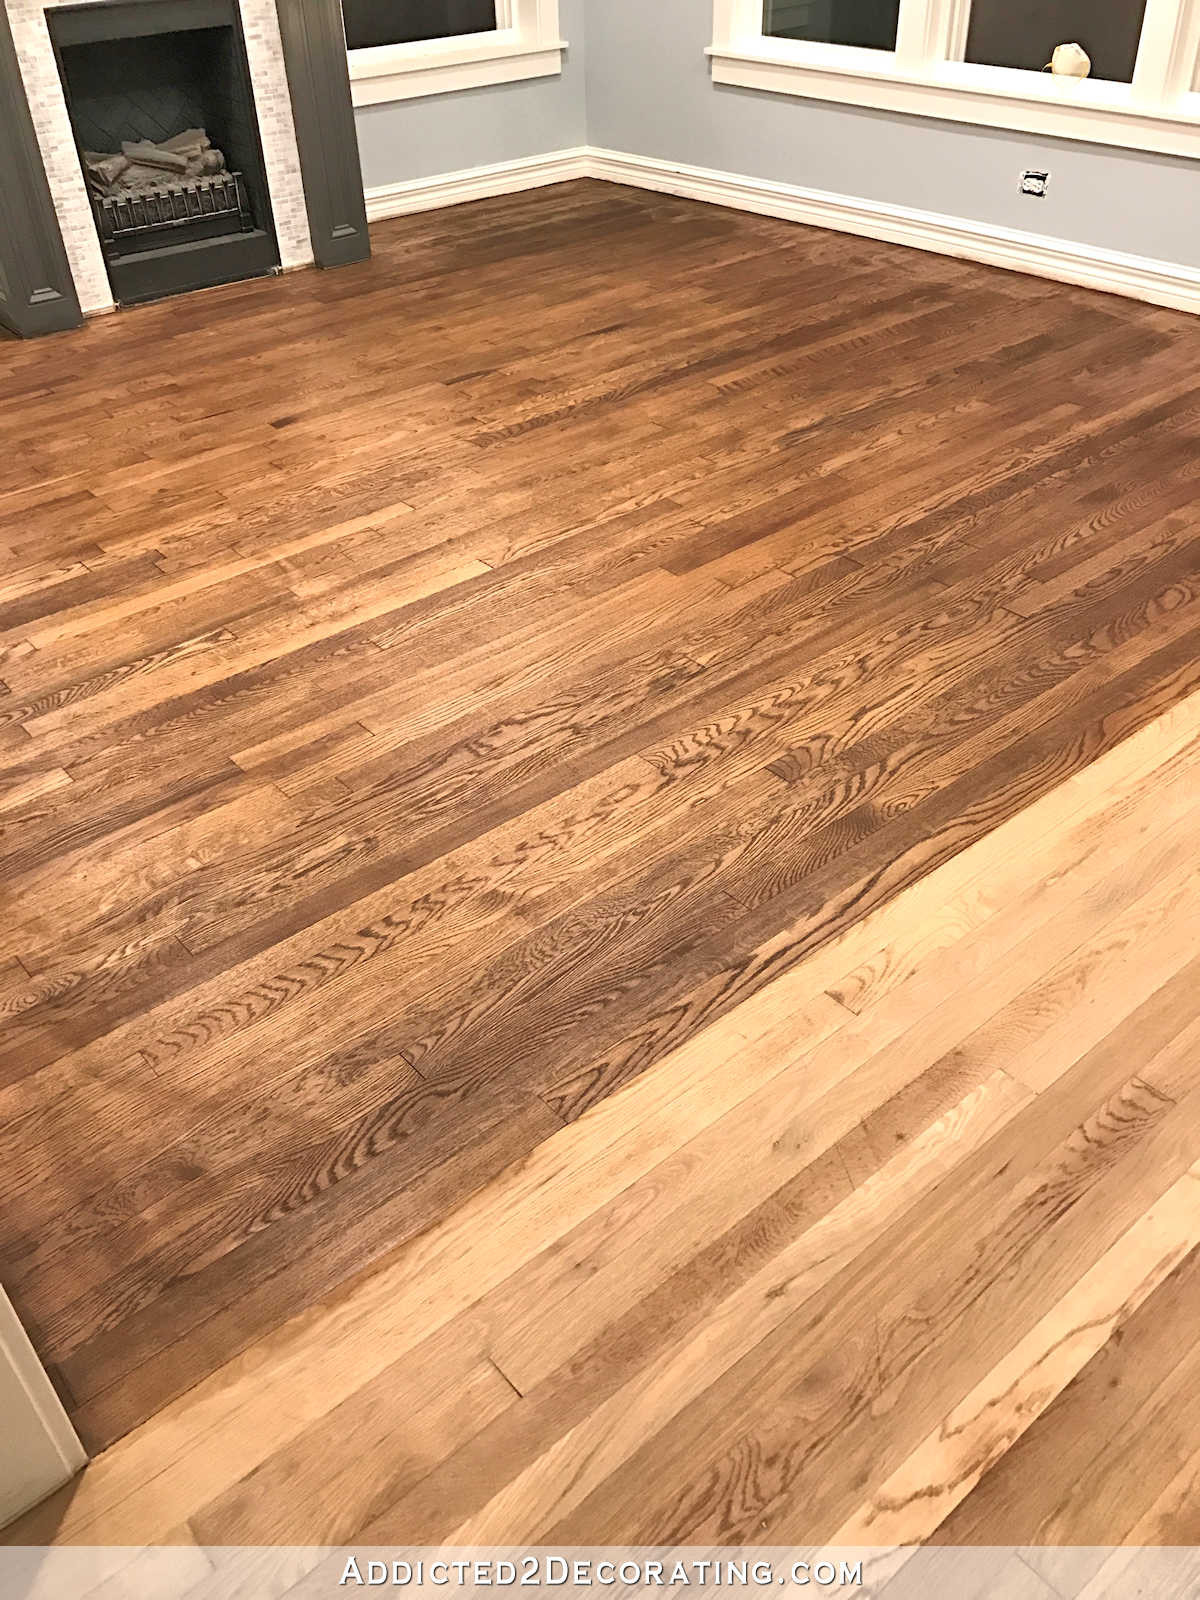 Unfinished Oak Hardwood Flooring Of Adventures In Staining My Red Oak Hardwood Floors Products Process In Staining Red Oak Hardwood Floors 7 Stain On the Living Room Floor